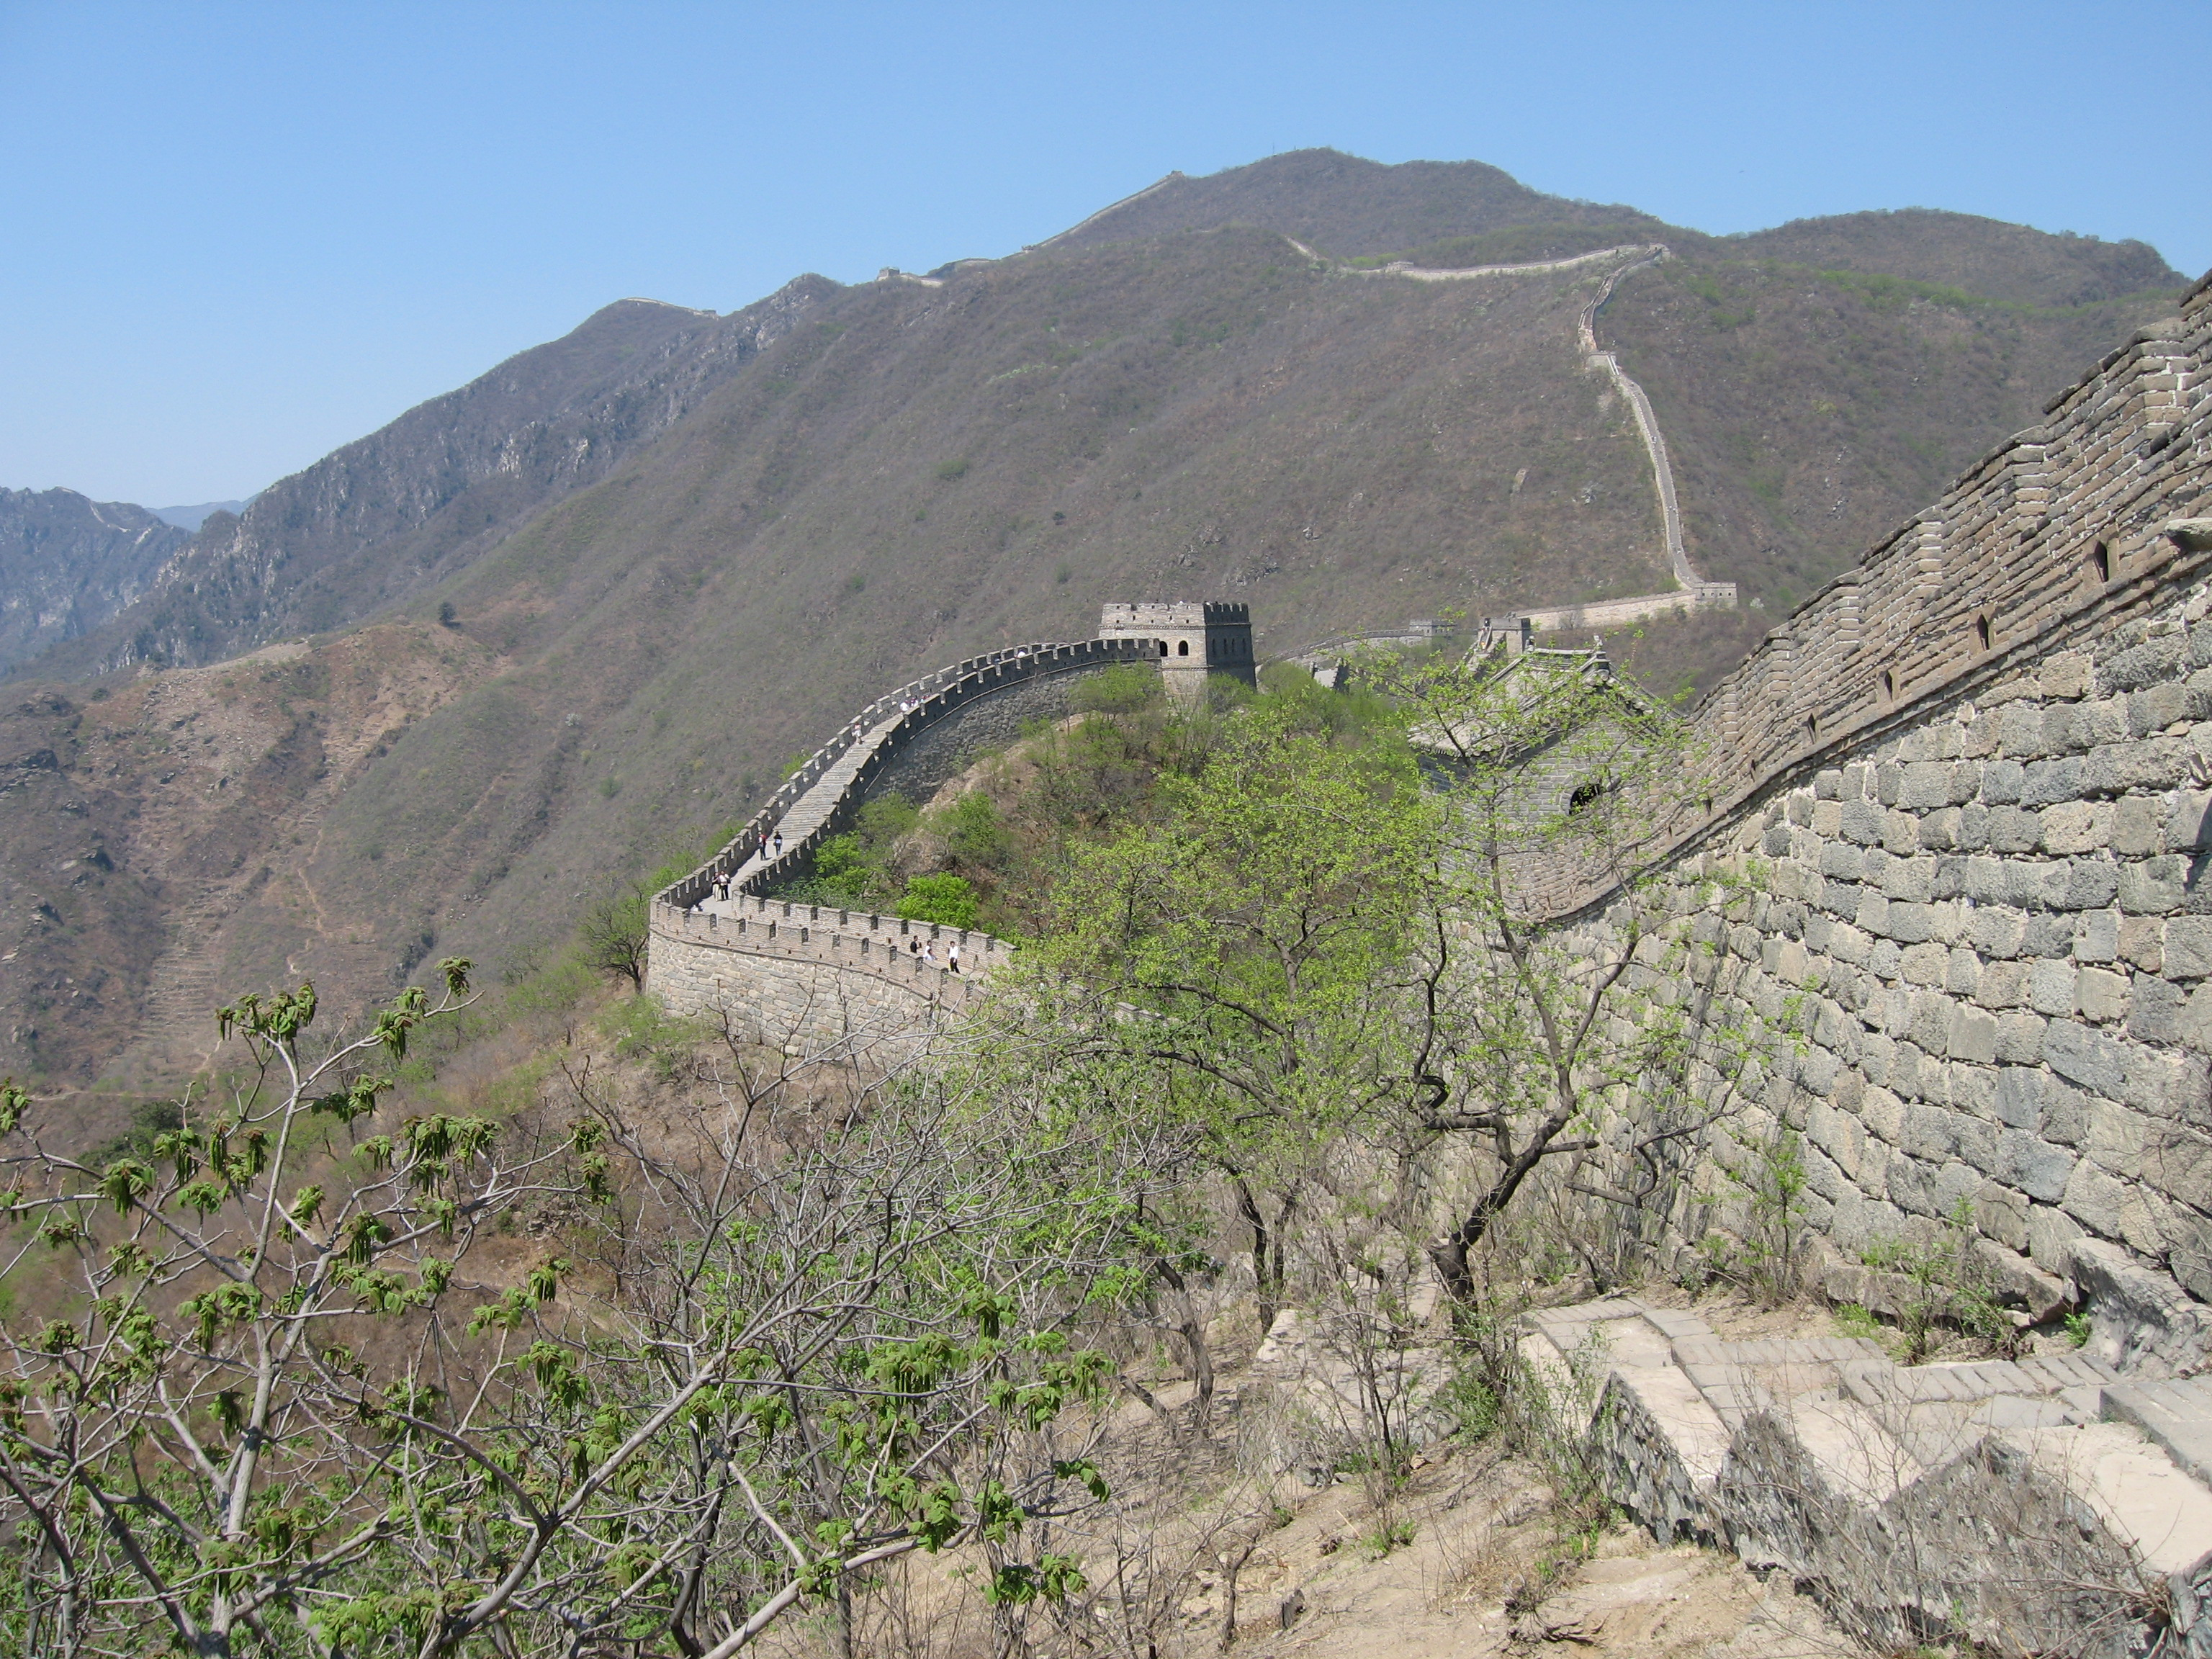 a history and description of the great wall of china Great wall chronology presents the timeline of great wall of china from spring and autumn (770 - 476bc) to ming dynasty (1368 - 1644) with location, length and building period in different dynasties.